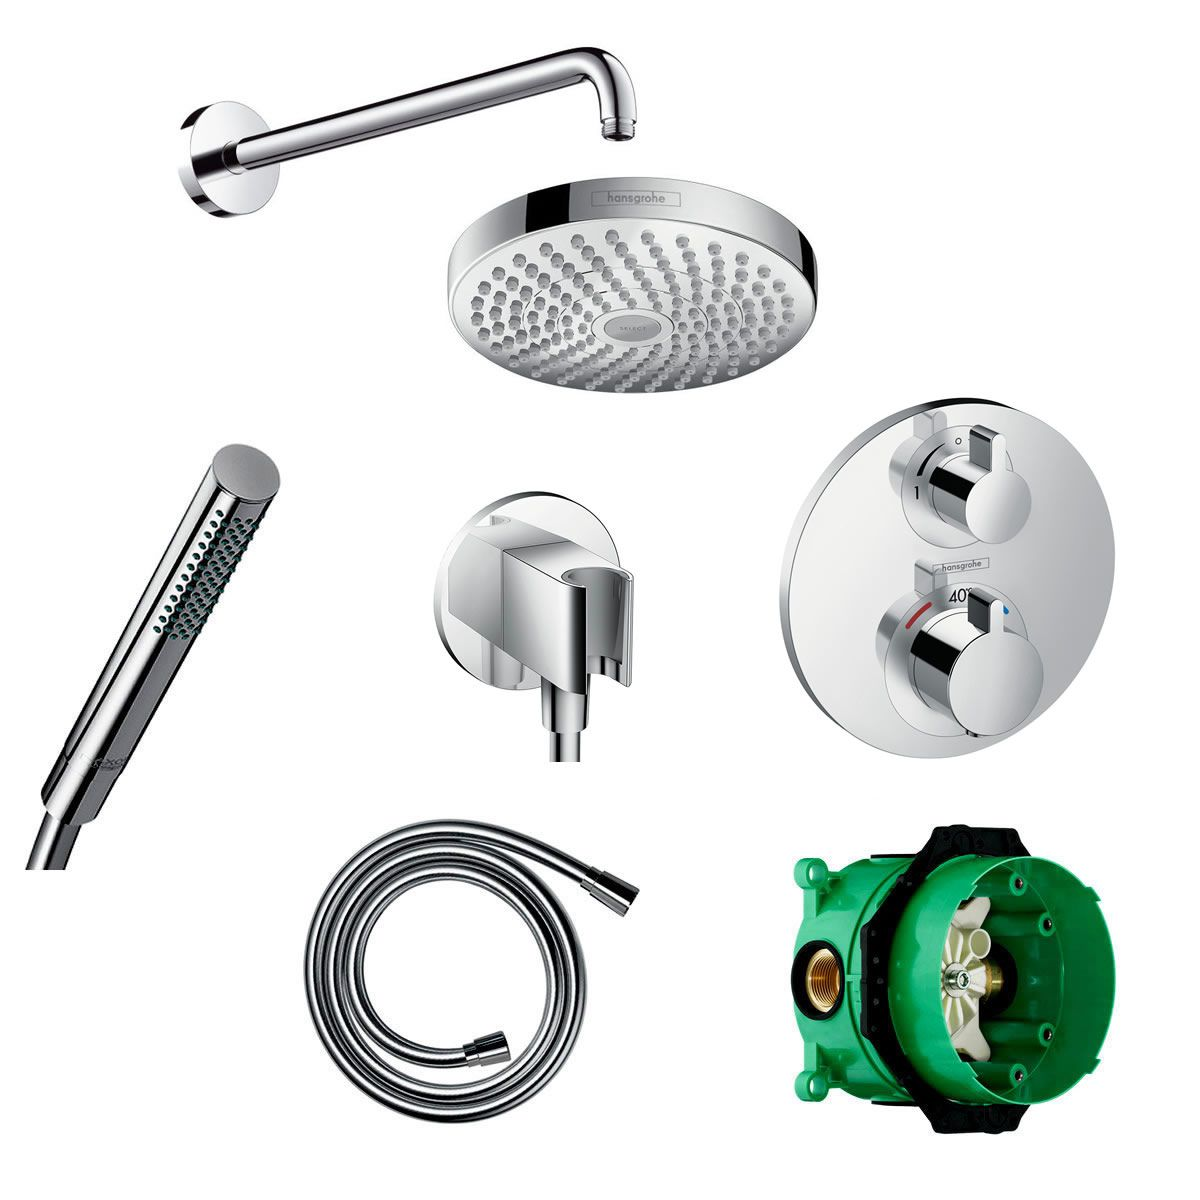 Hansgrohe Round Ecostat S Valve with Croma Select 180 Overhead ...